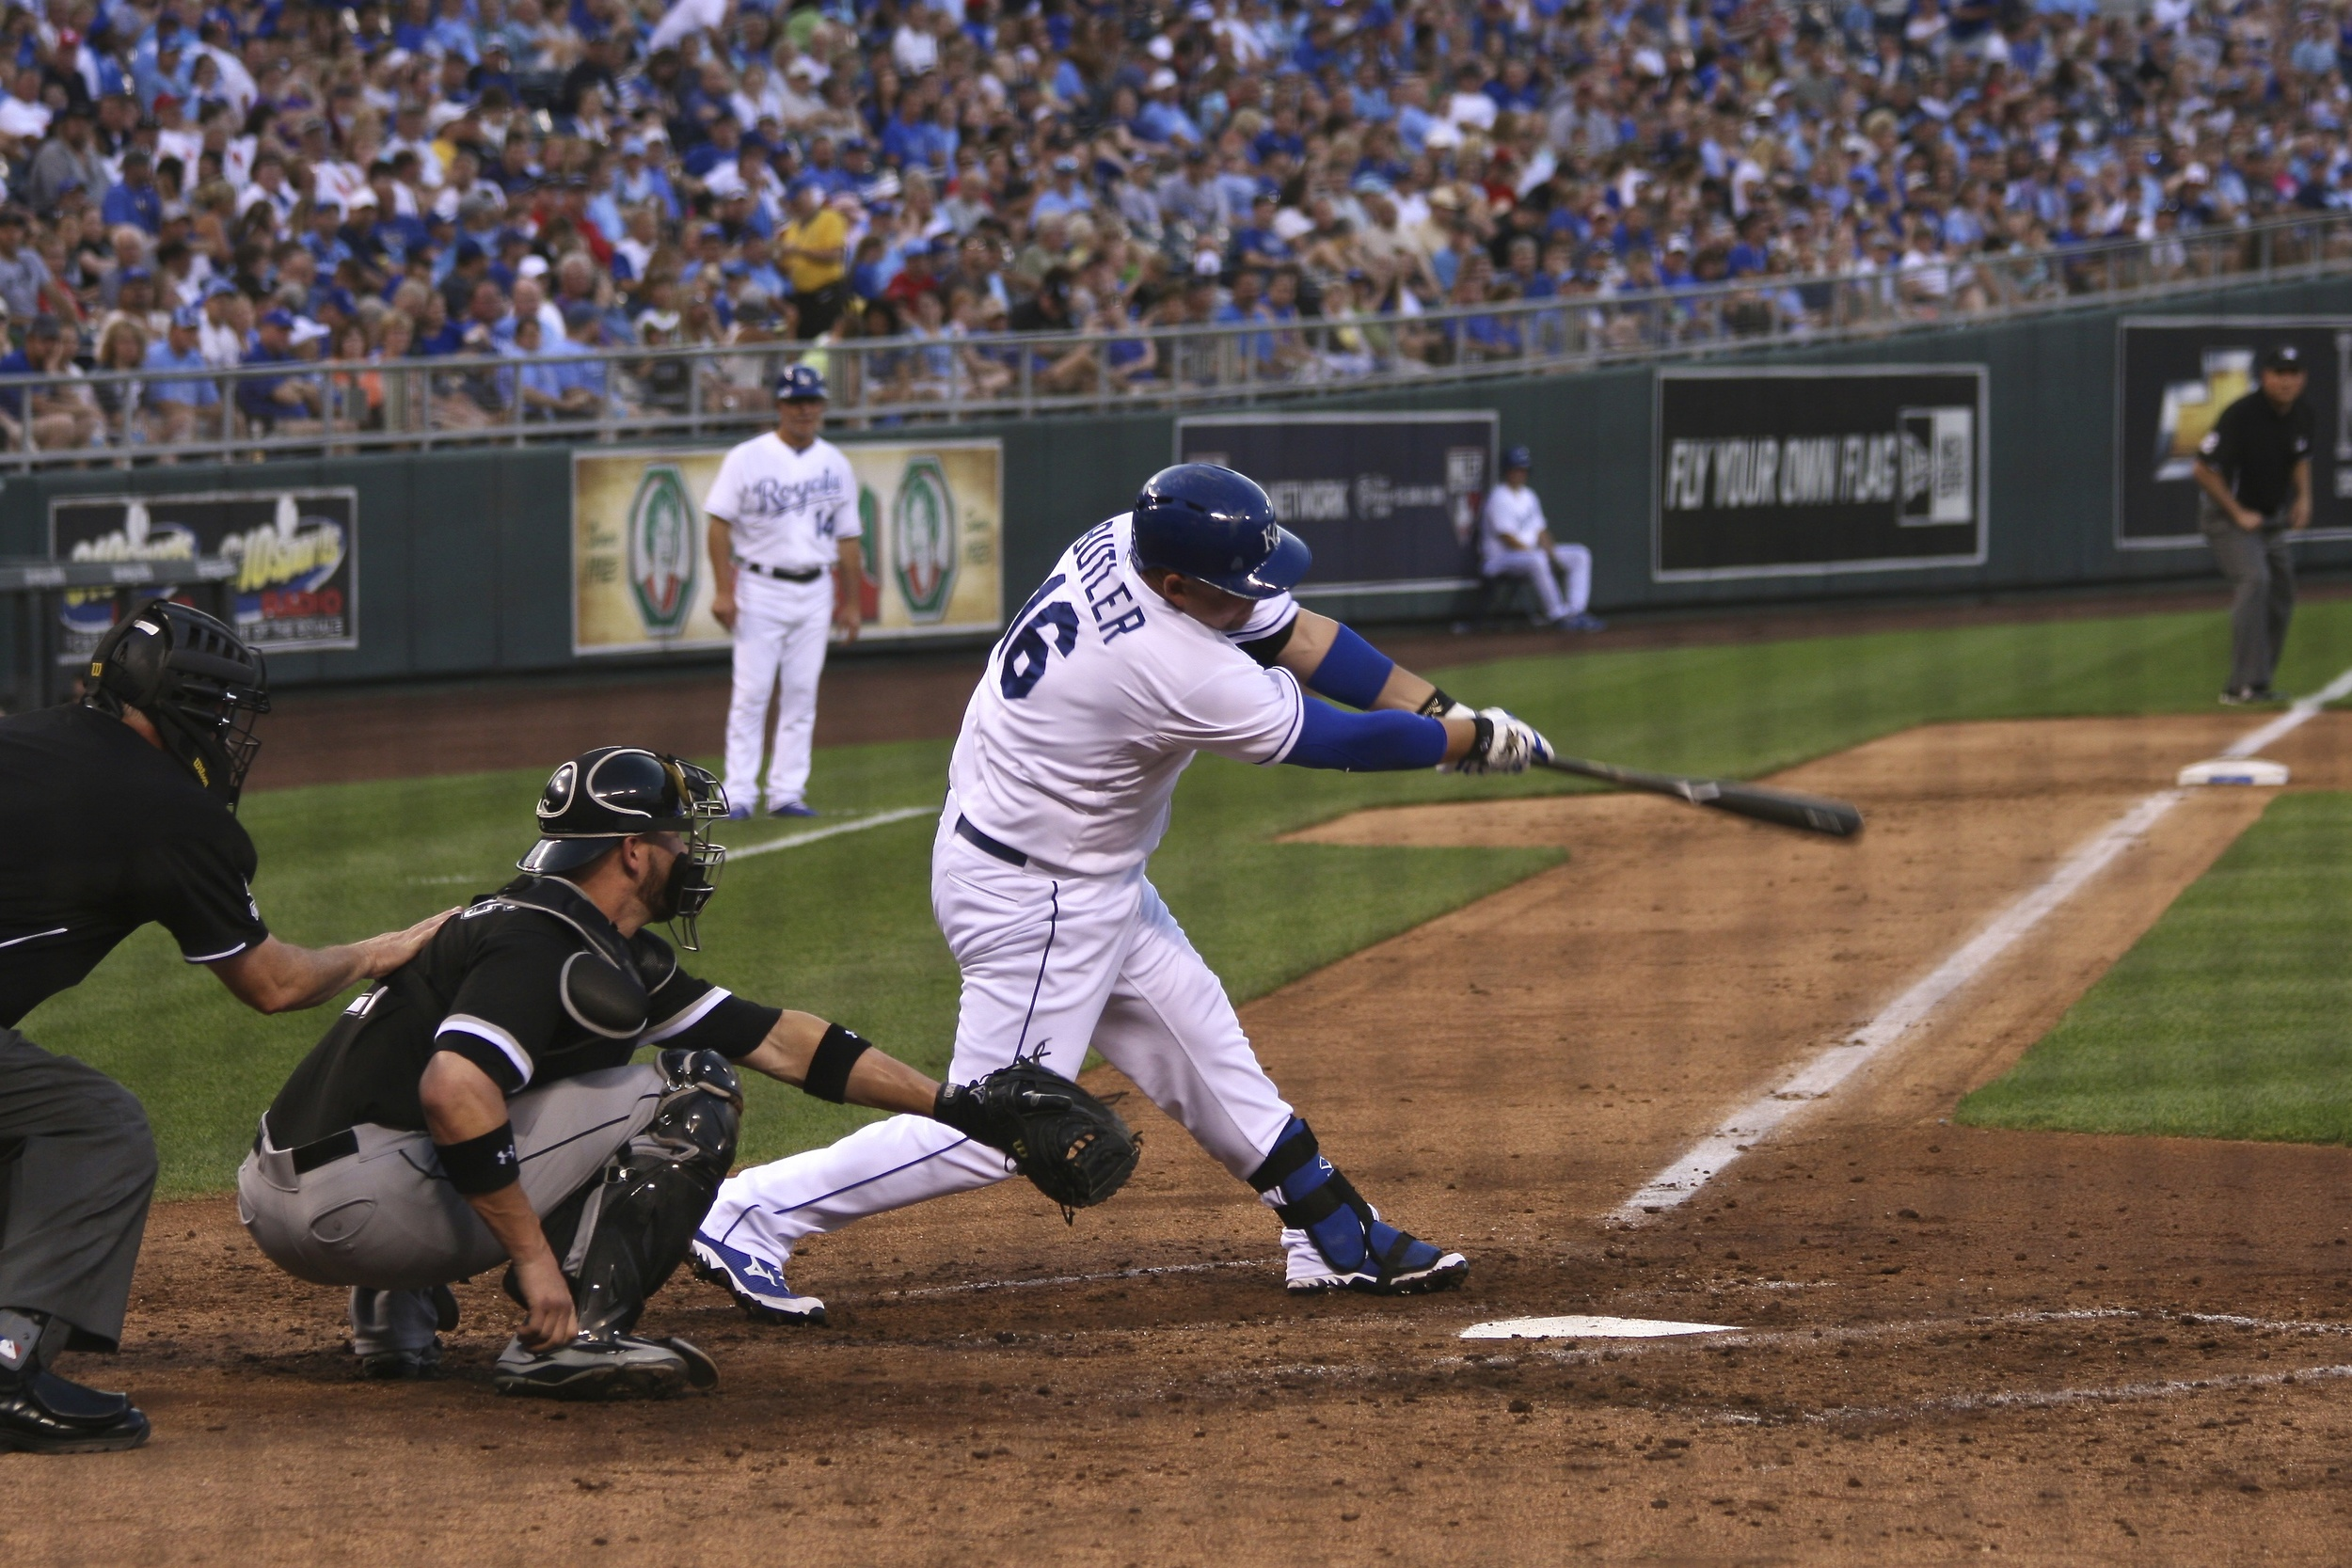 Billy Butler takes a hack